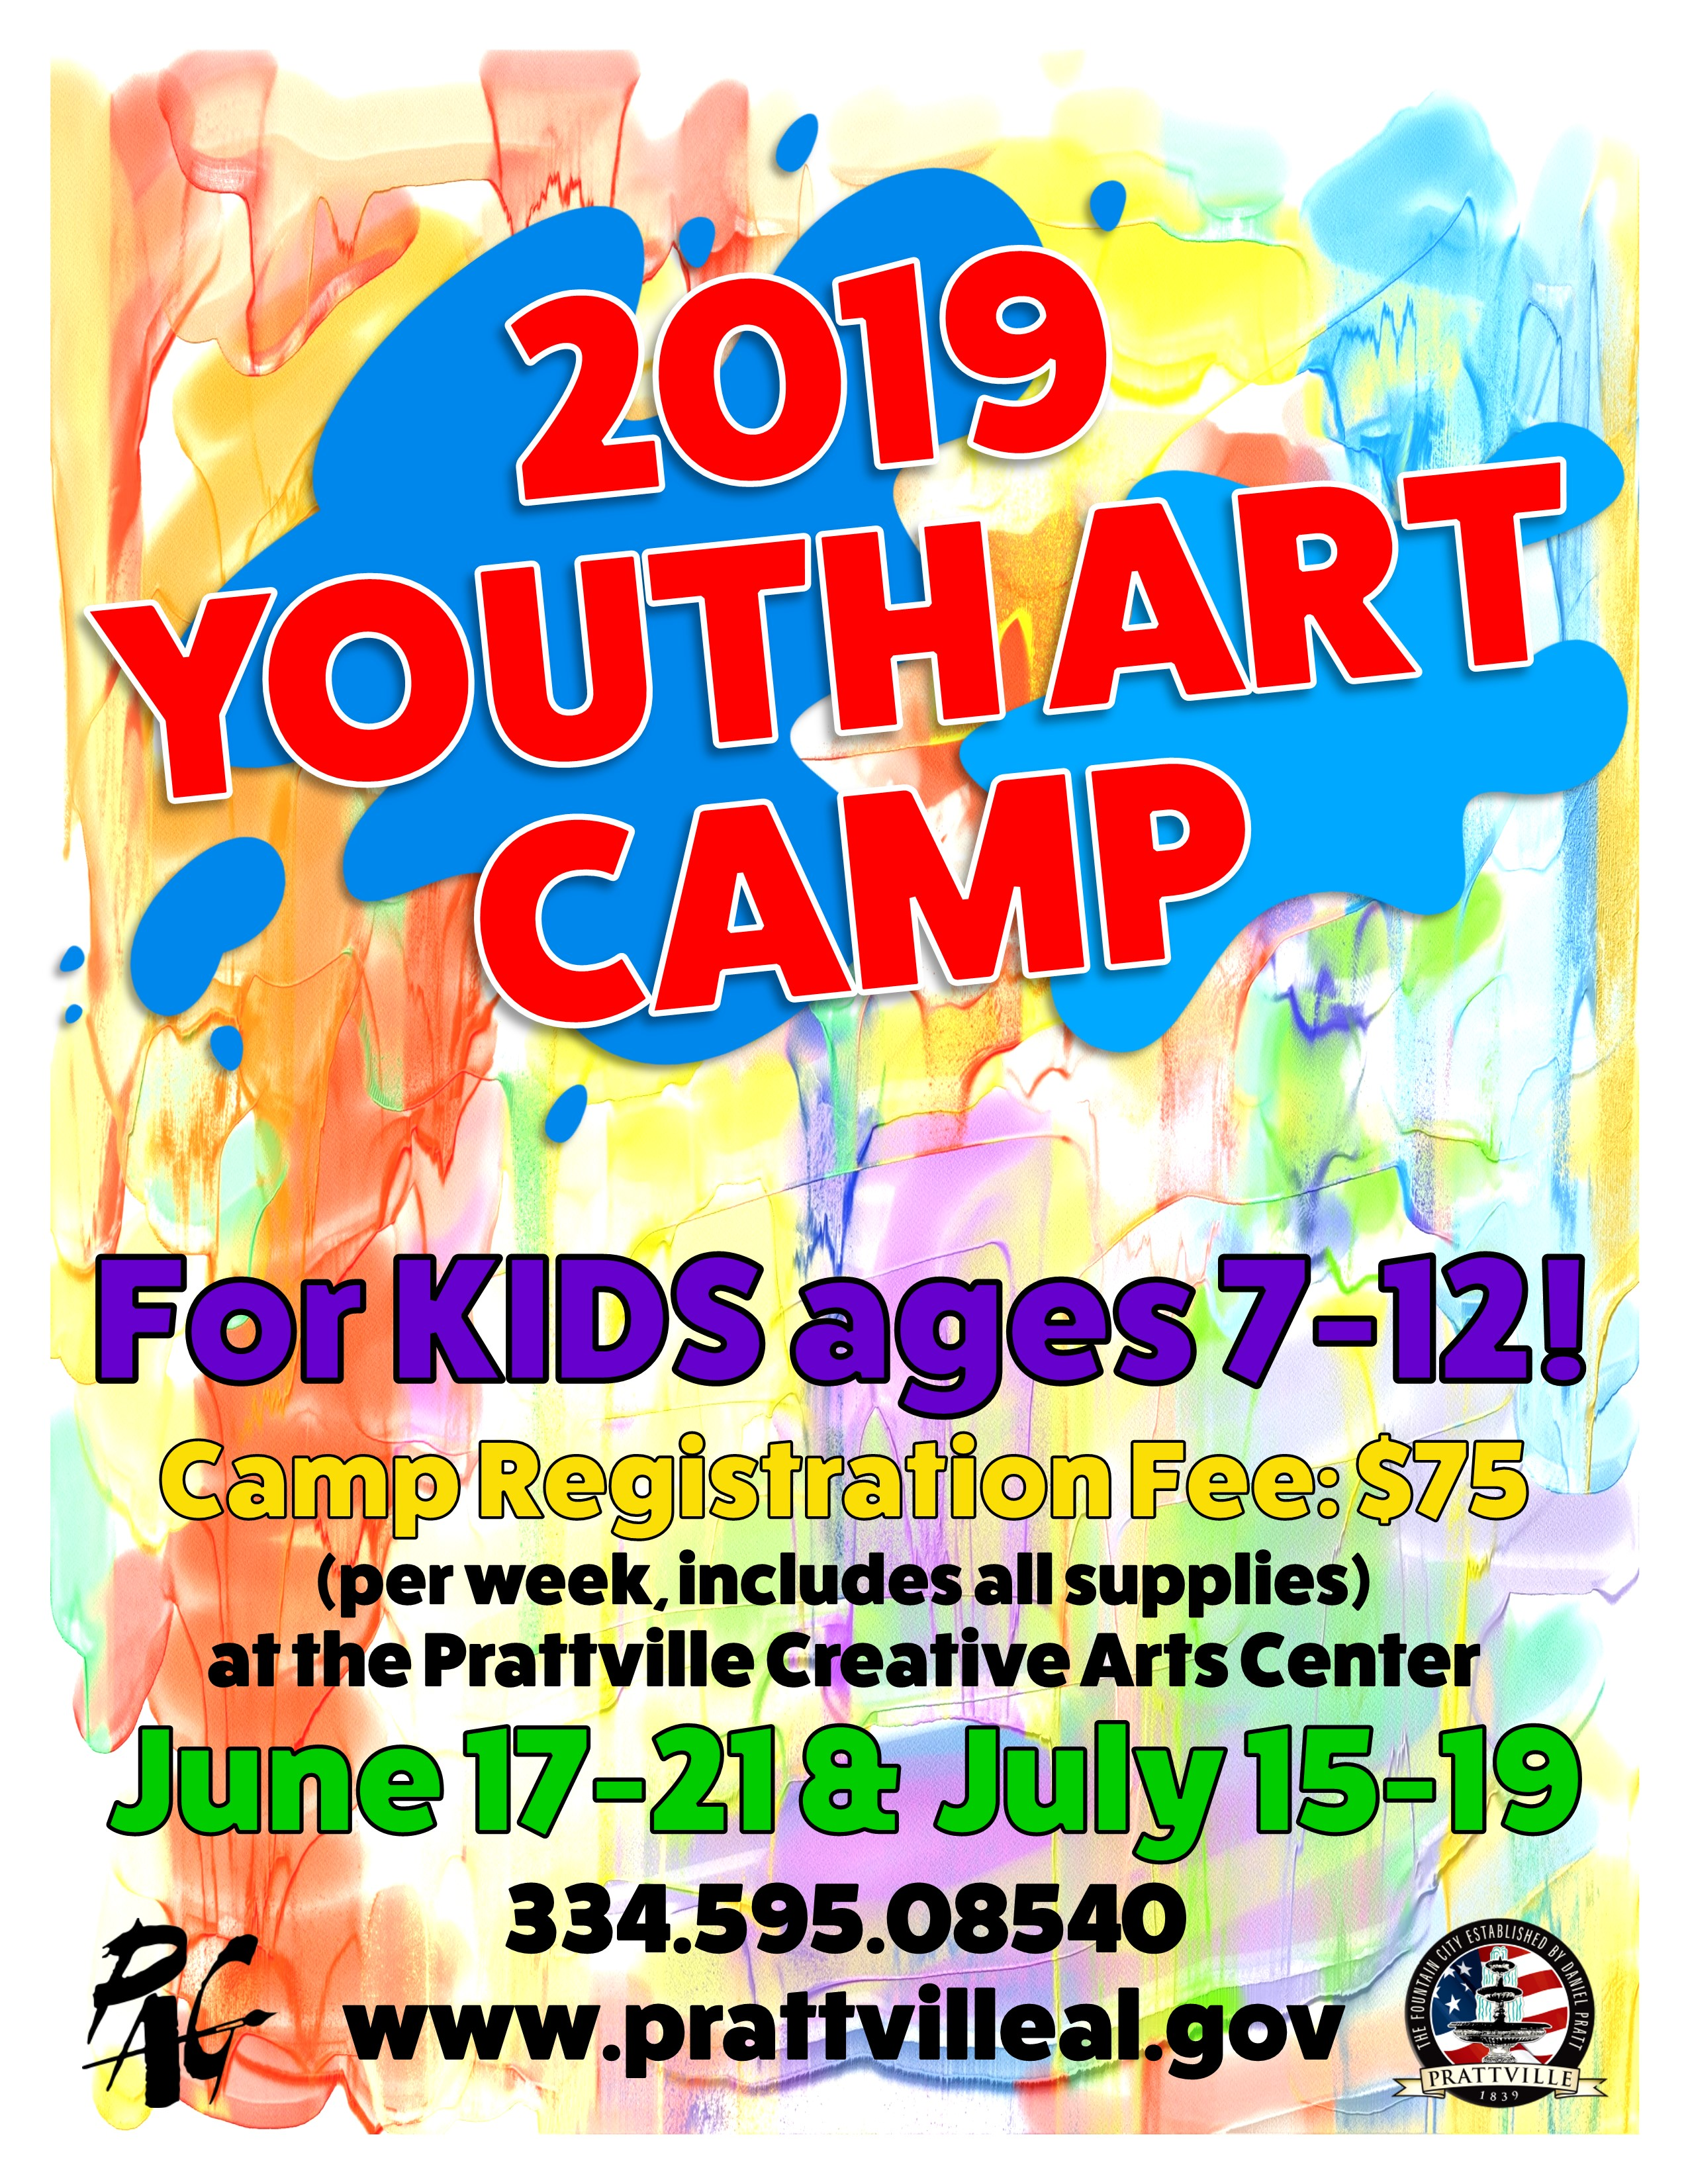 2019 Youth Art Camp